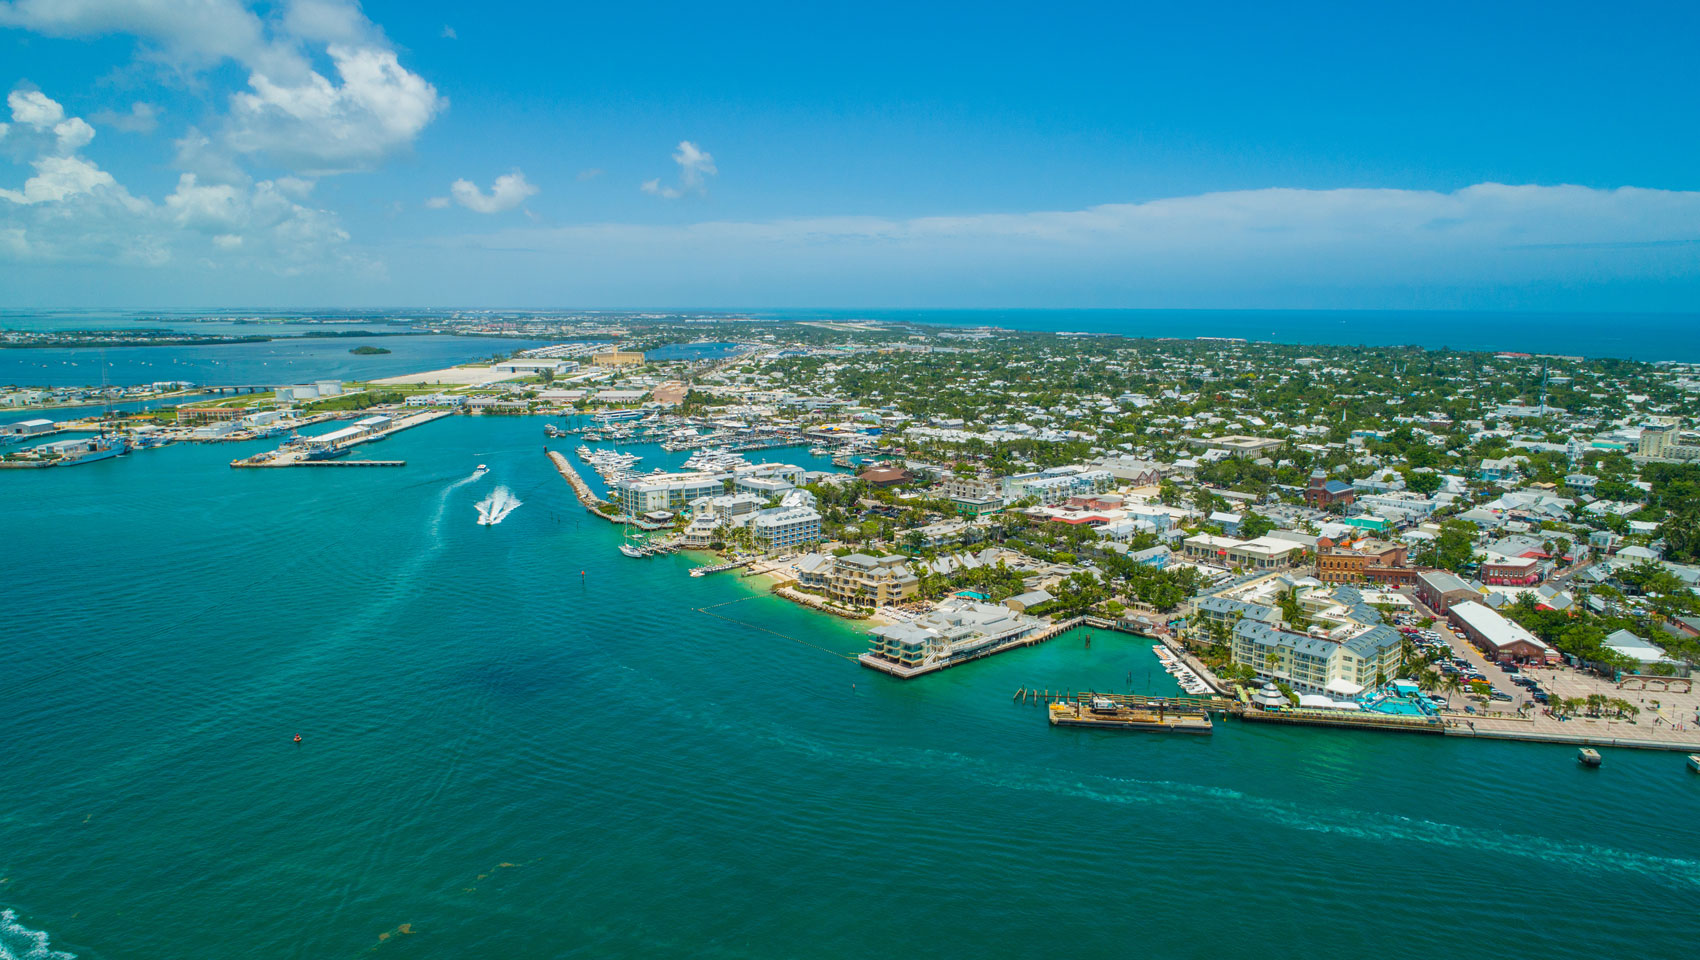 aerial view of key west with ocean and city views